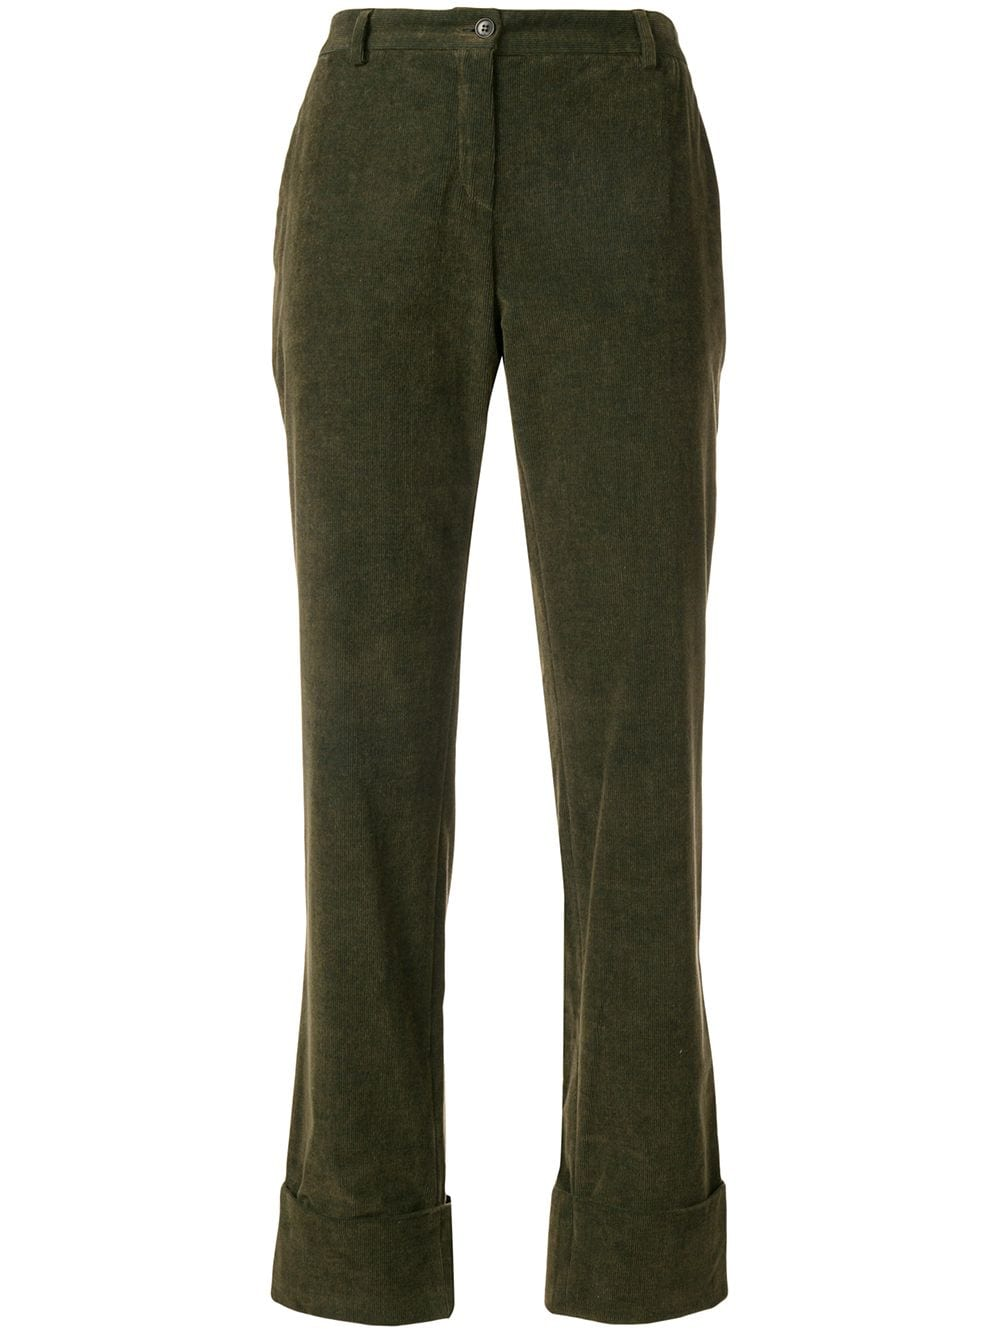 Romeo Gigli Vintage turn-up straight leg trousers - Green von Romeo Gigli Vintage